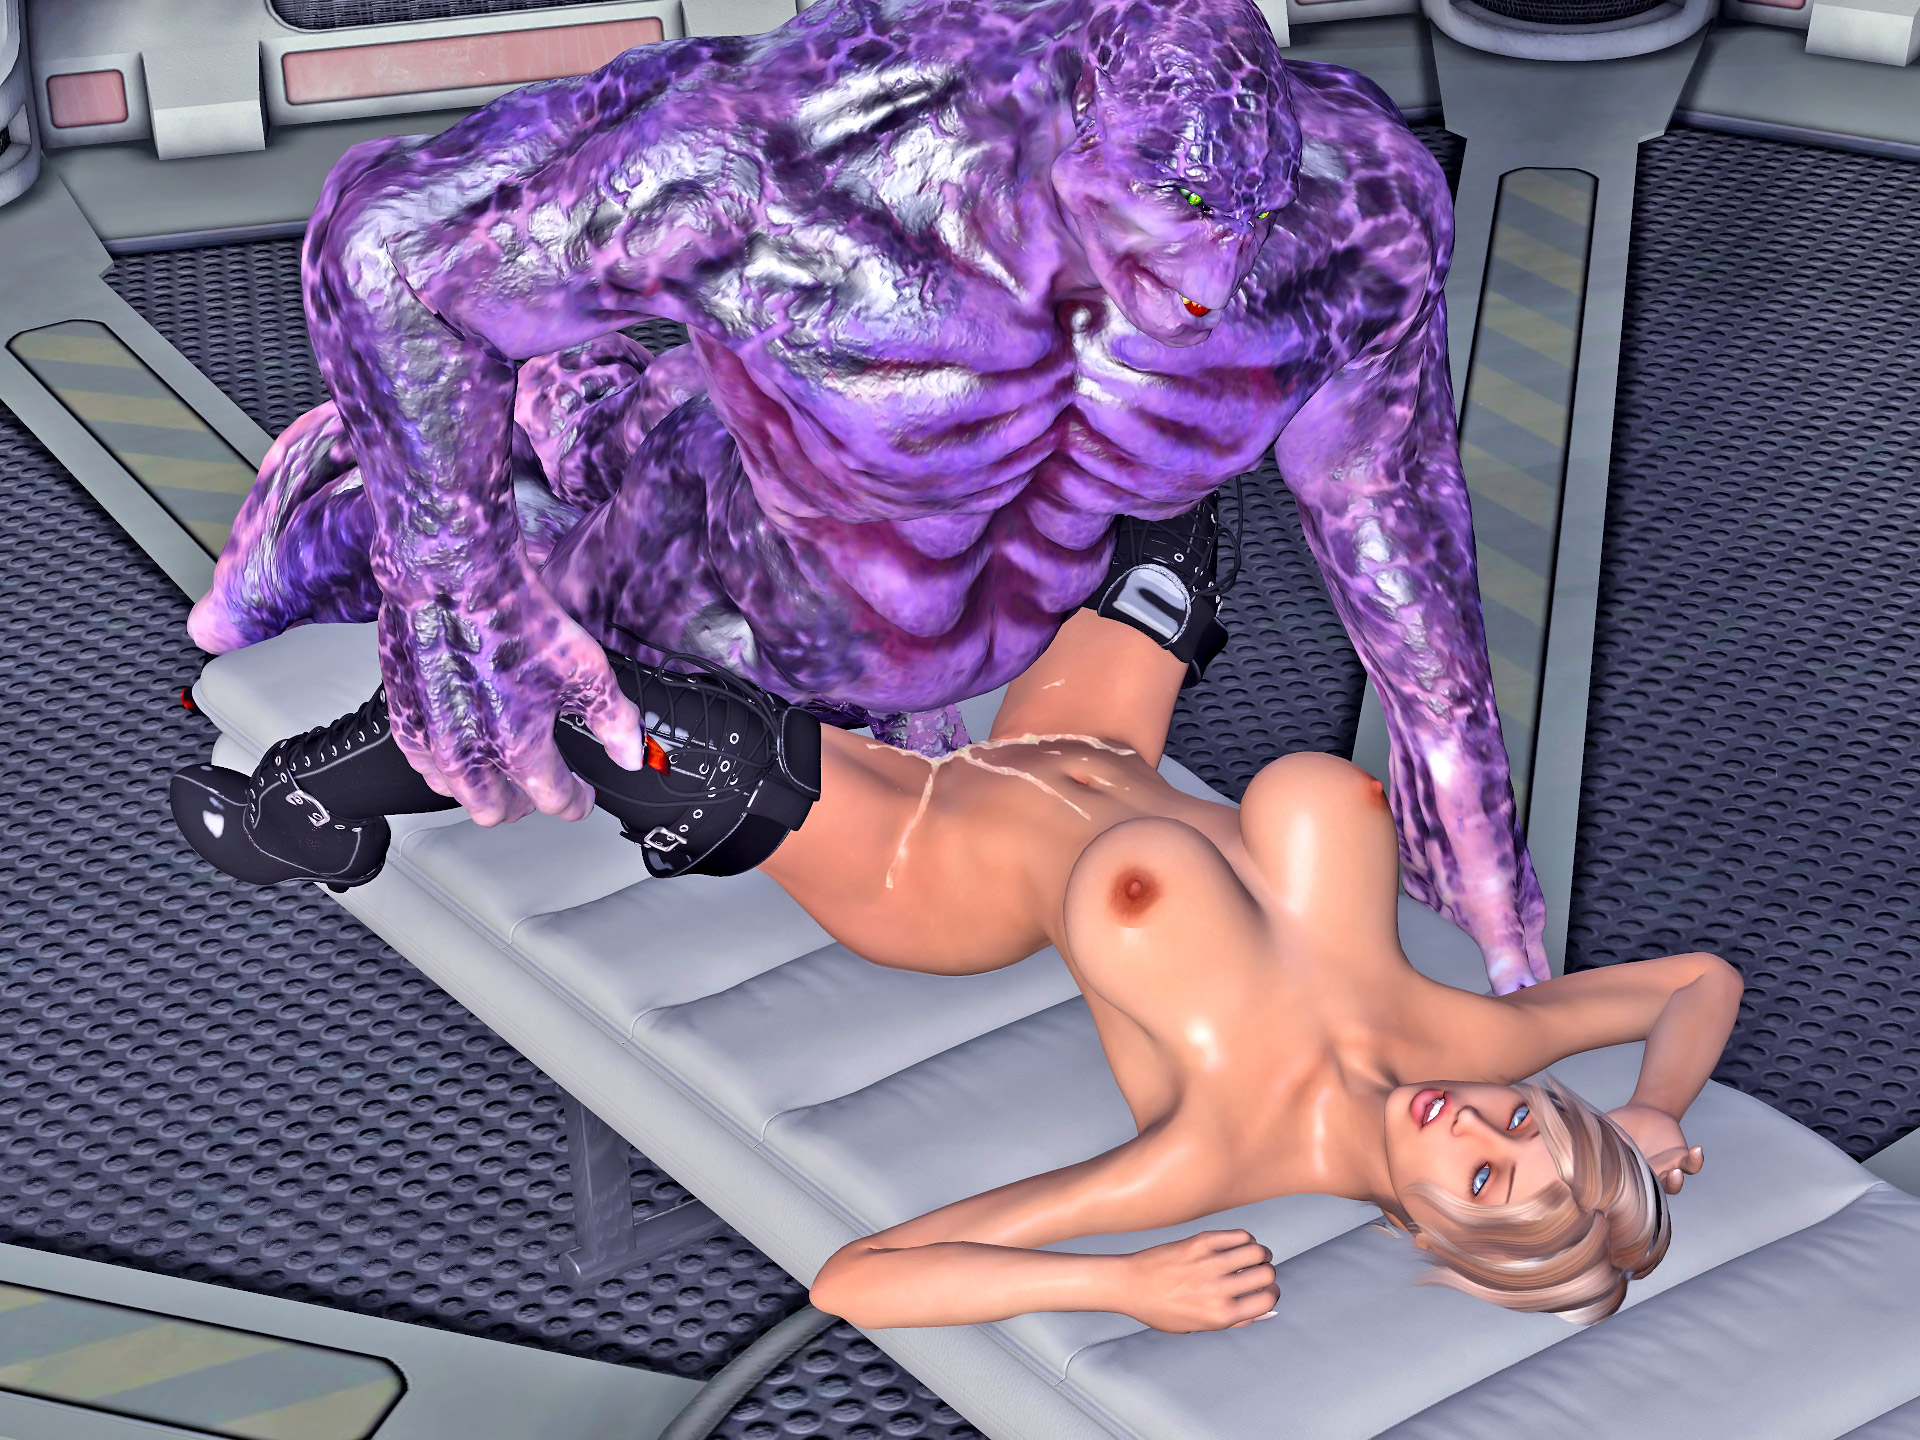 3d monster porn on youtube hentia gallery